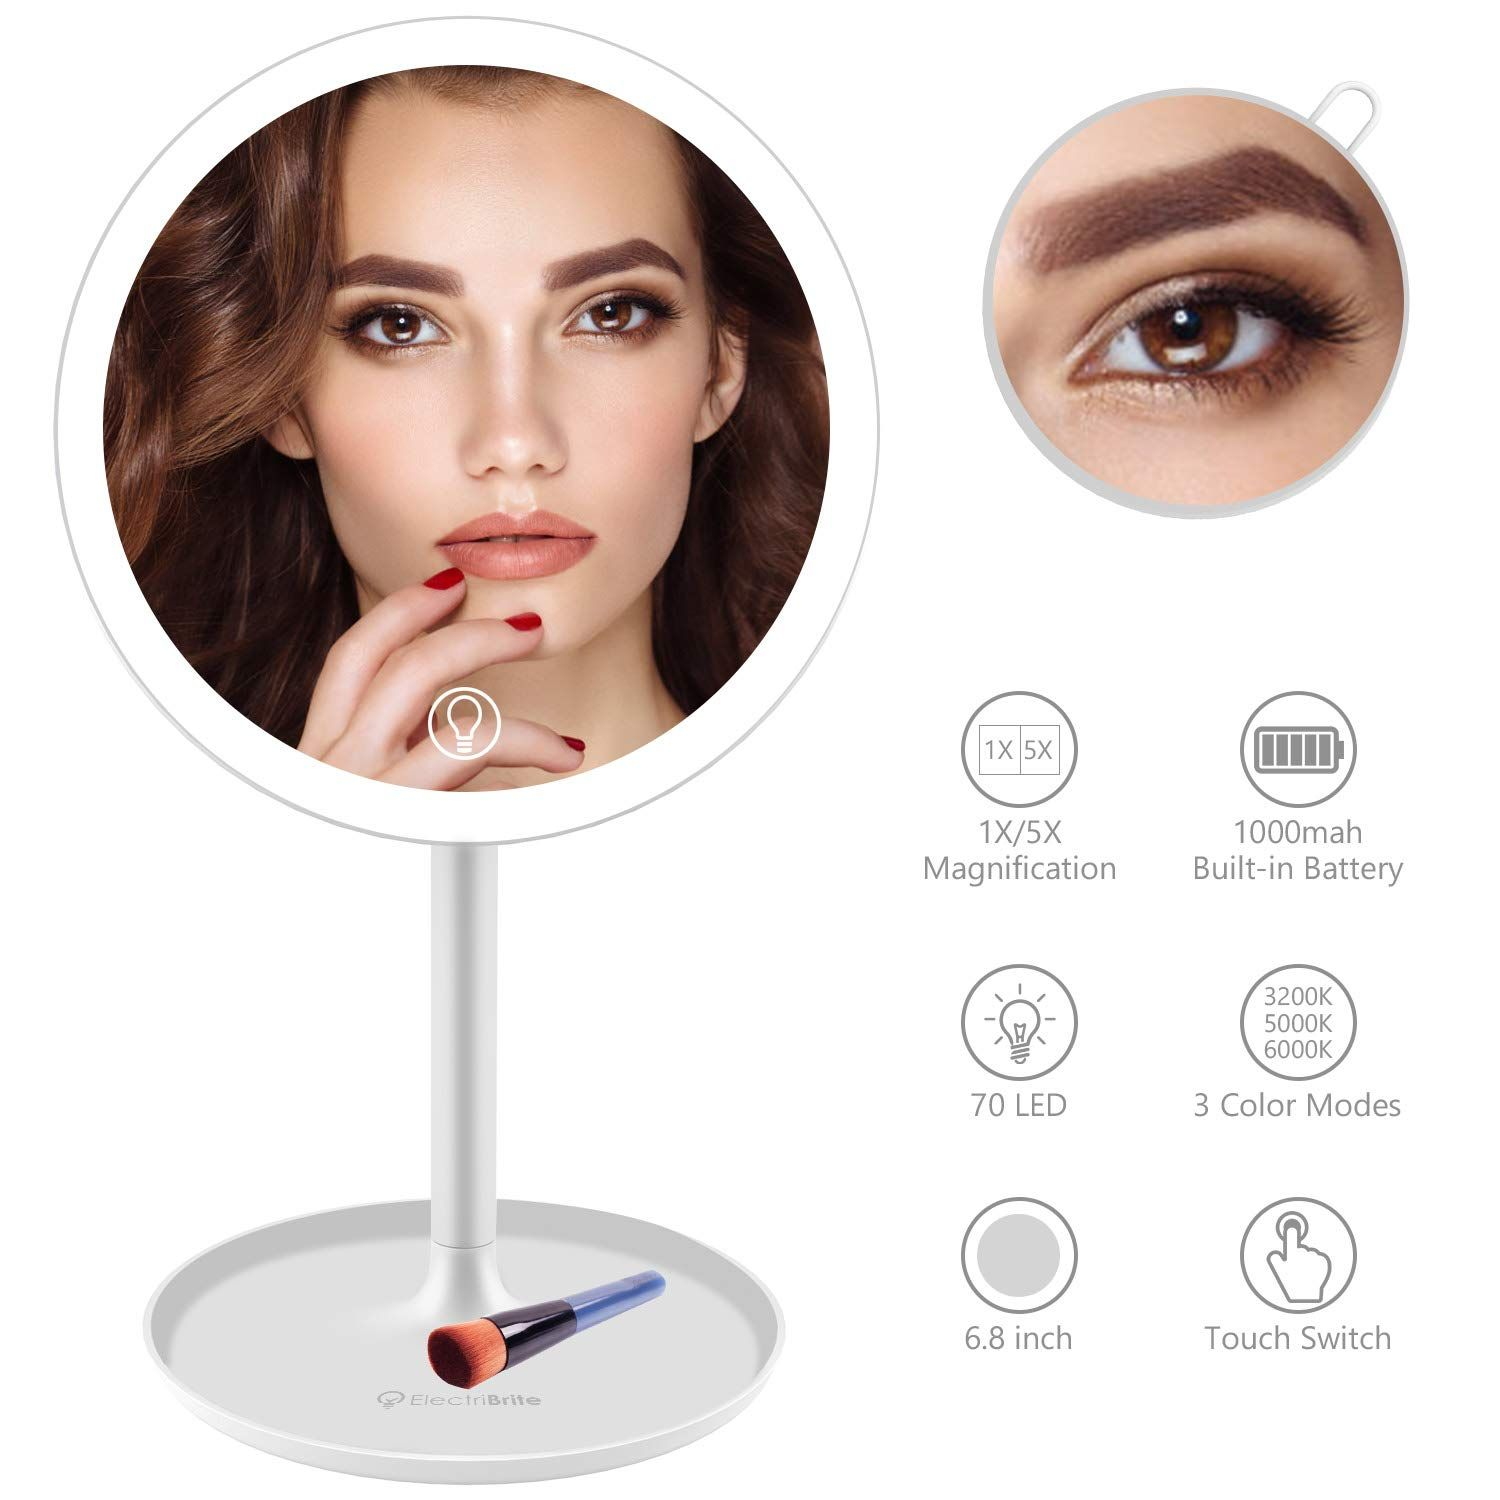 LED Lighted Makeup Mirror for Vanity Rechargeable 8 inch